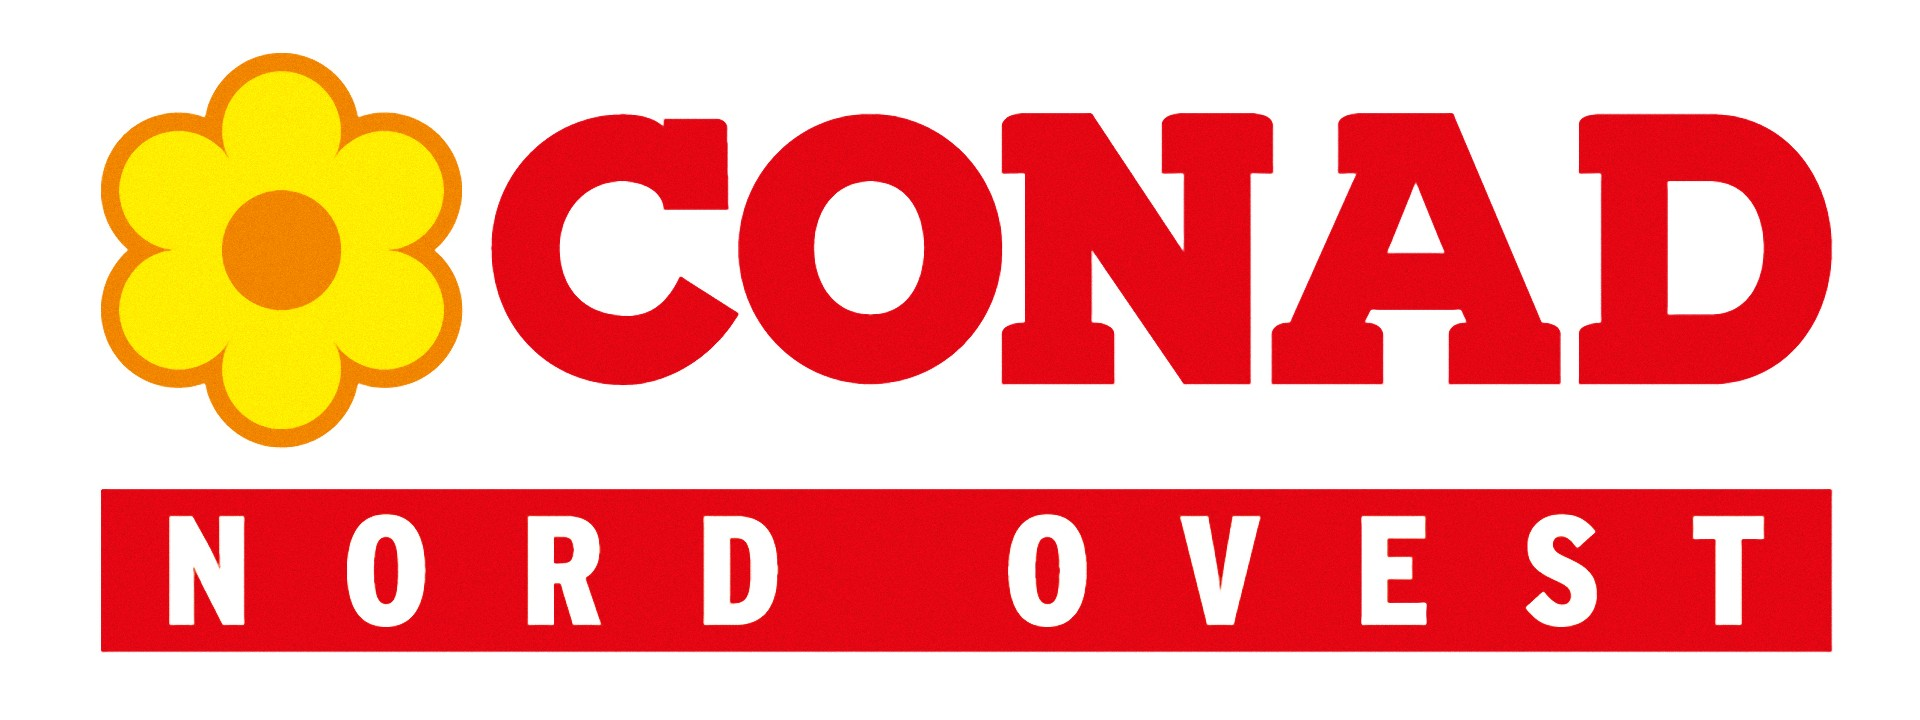 conad nord-ovest logo